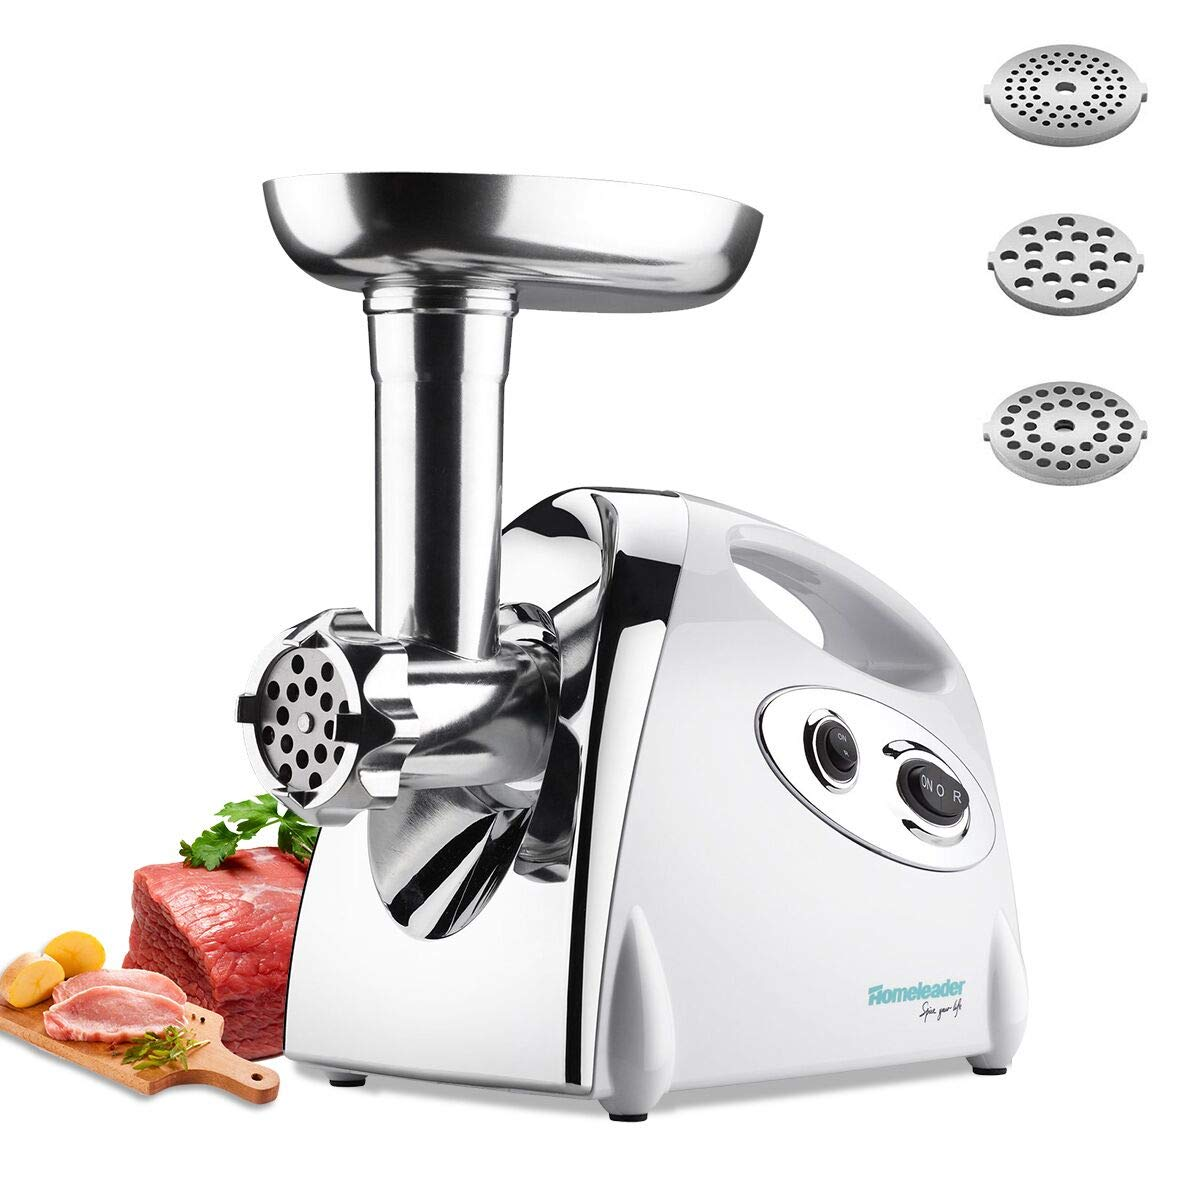 Homeleader Meat Grinder, Sausage Maker with Reverse Function, Big Capacity Stainless Steel With 3 Grinding Plates, 800w, ETL Approved by Homeleader